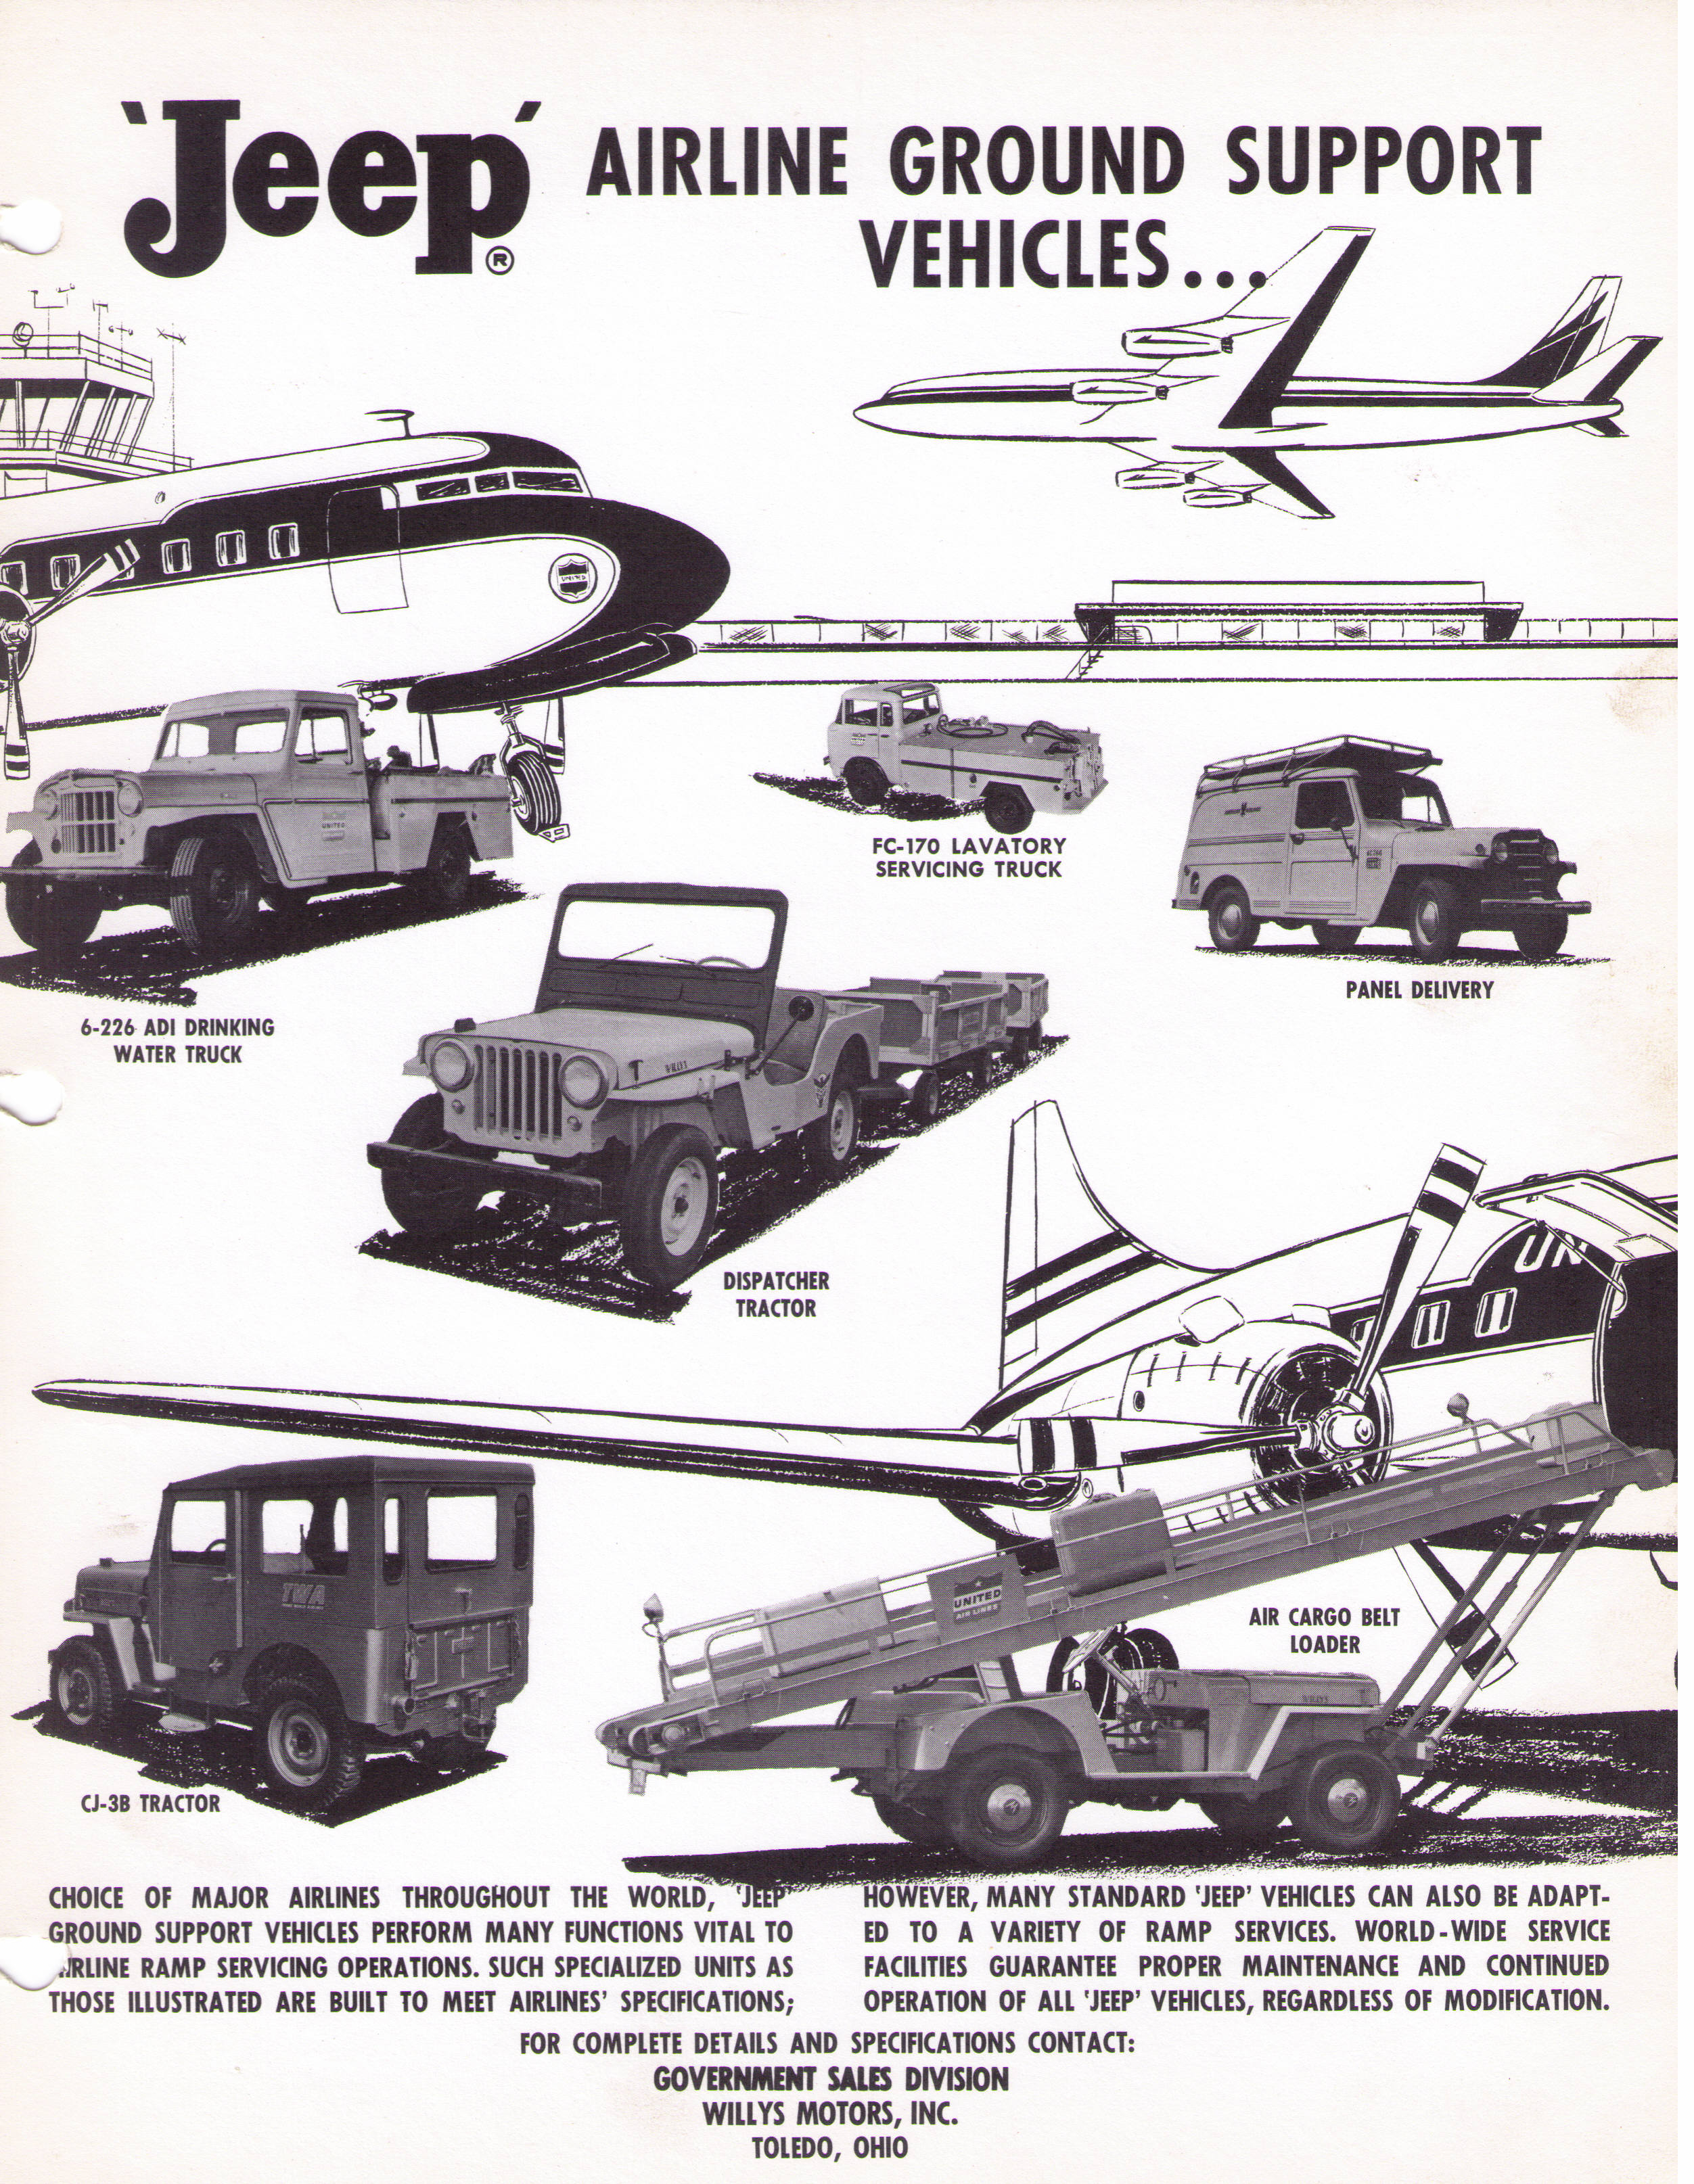 Jeep Airline Ground Support